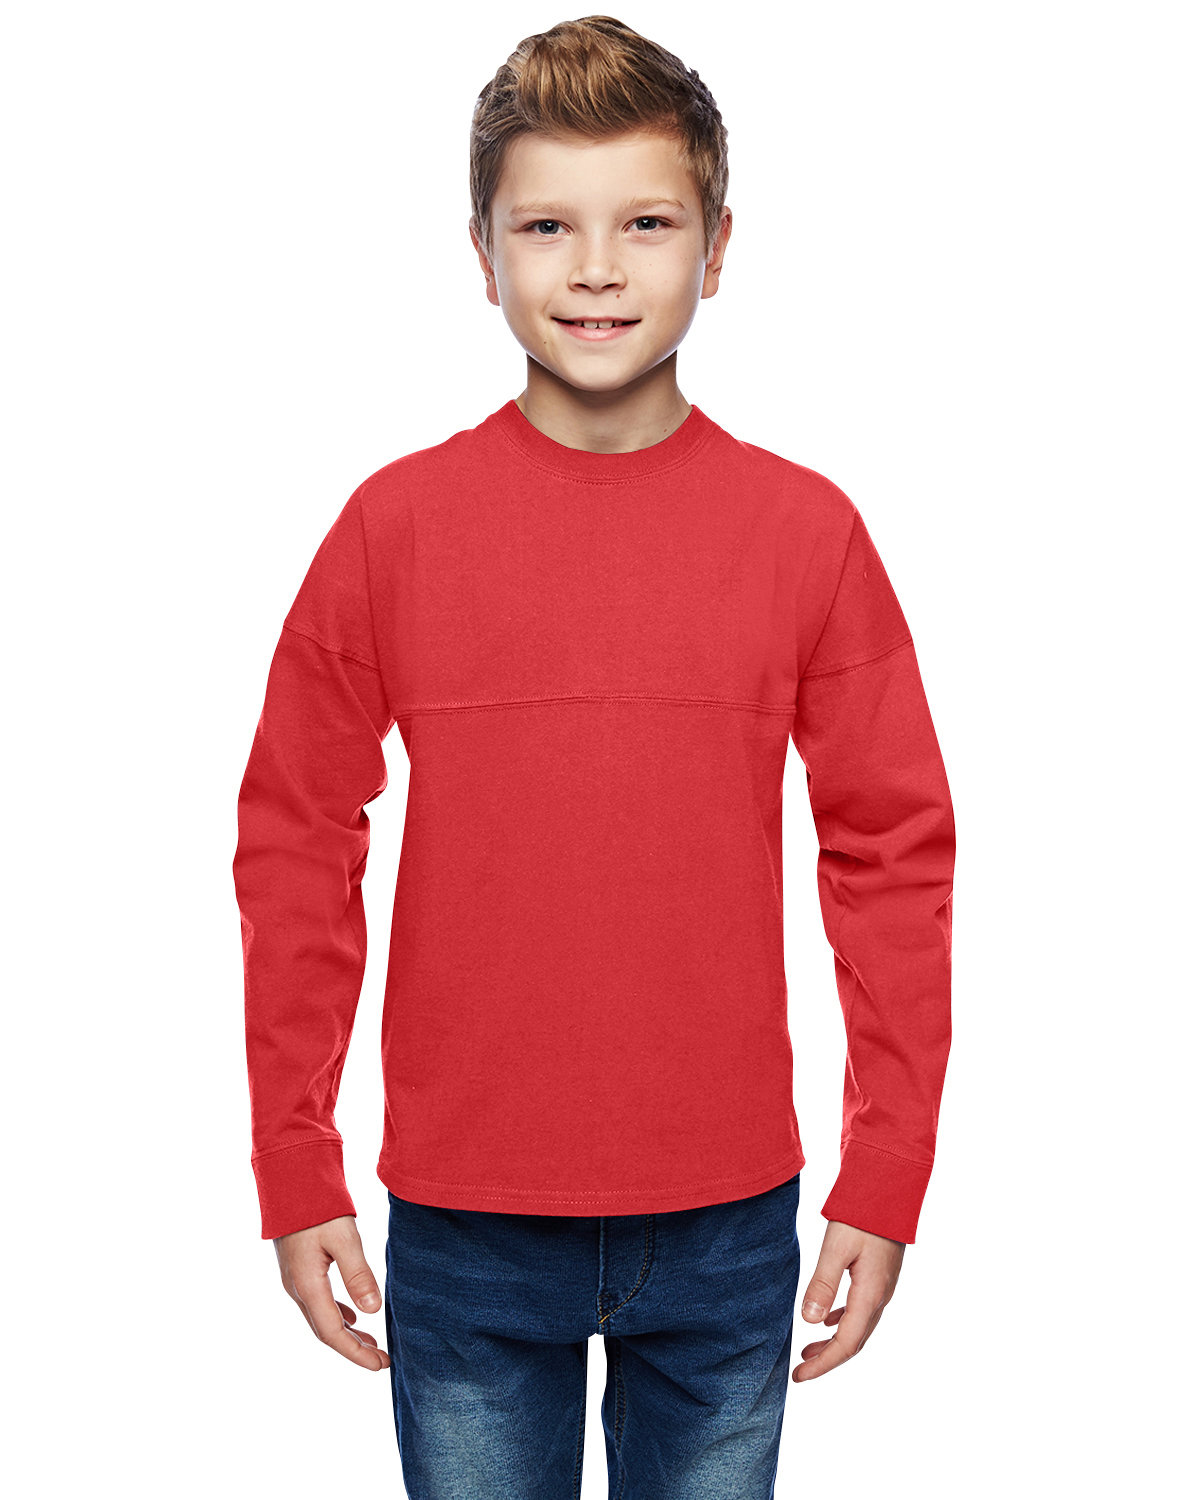 J America Youth Game Day Jersey RED